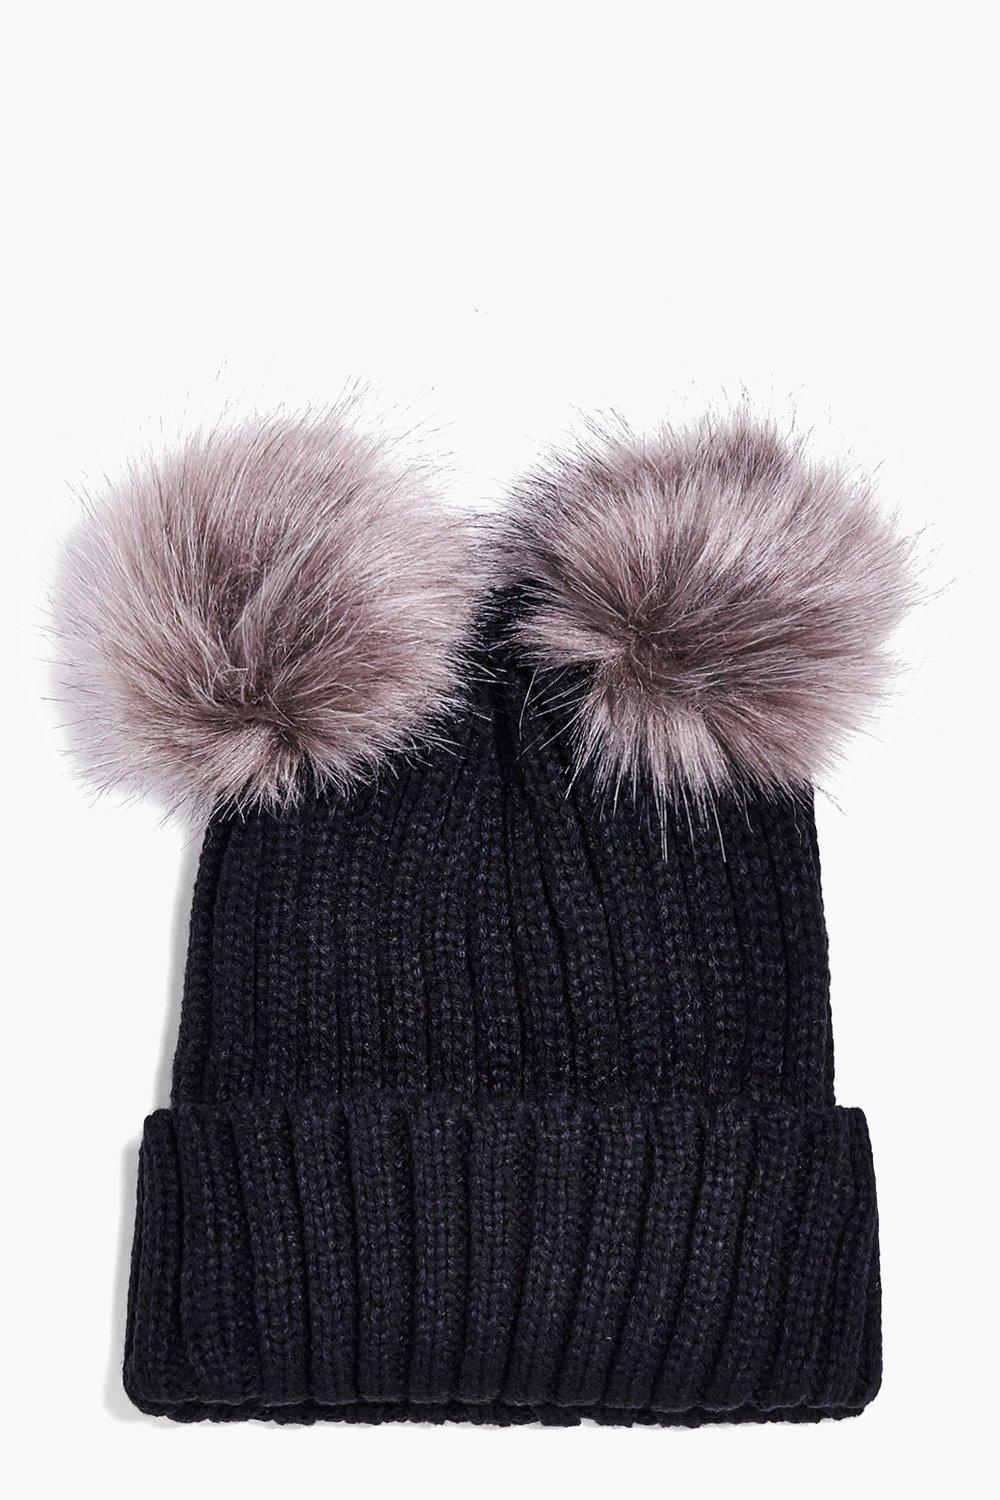 Violet Double Faux Fur Pom Beanie Hat. Hover to zoom e958443e23c